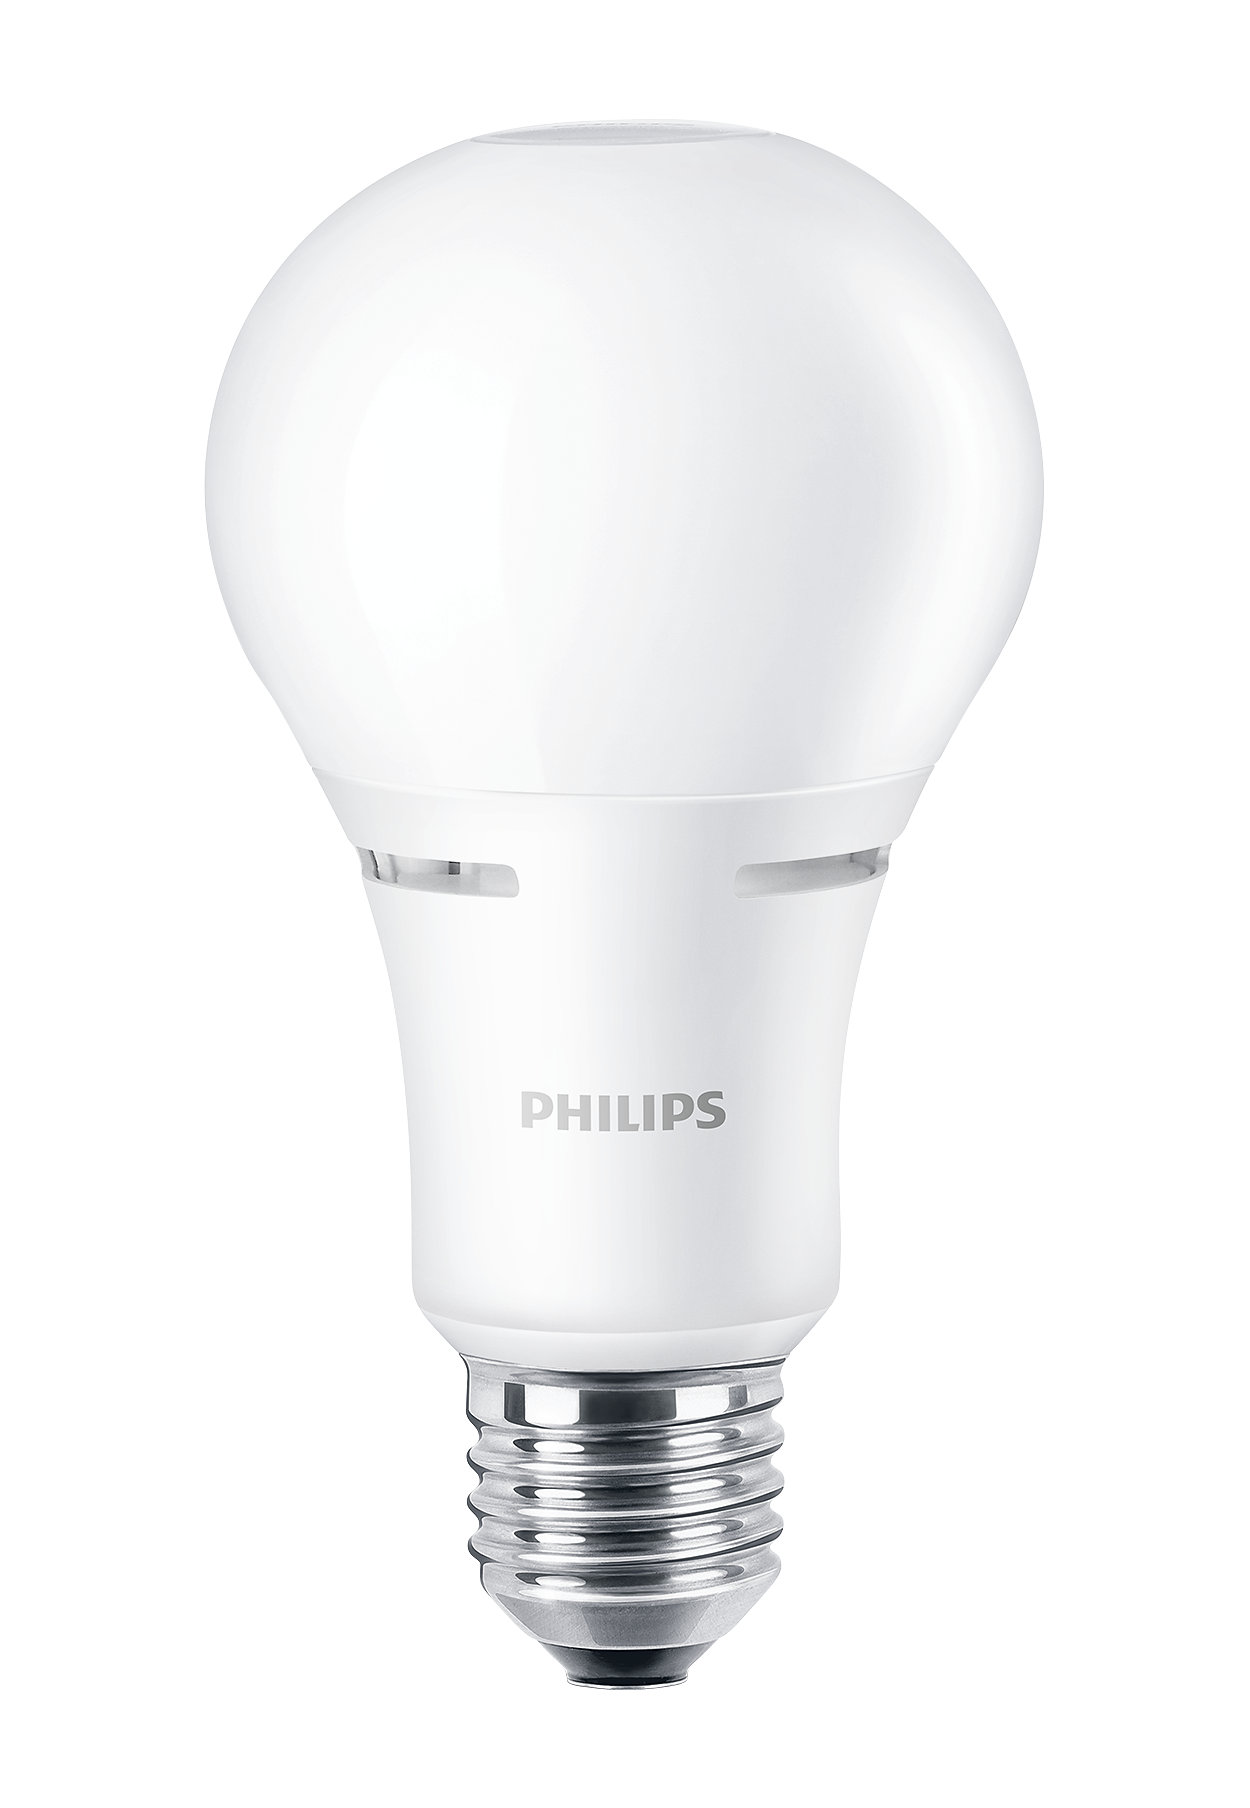 Provides soft, warm light and 3 wattage settings